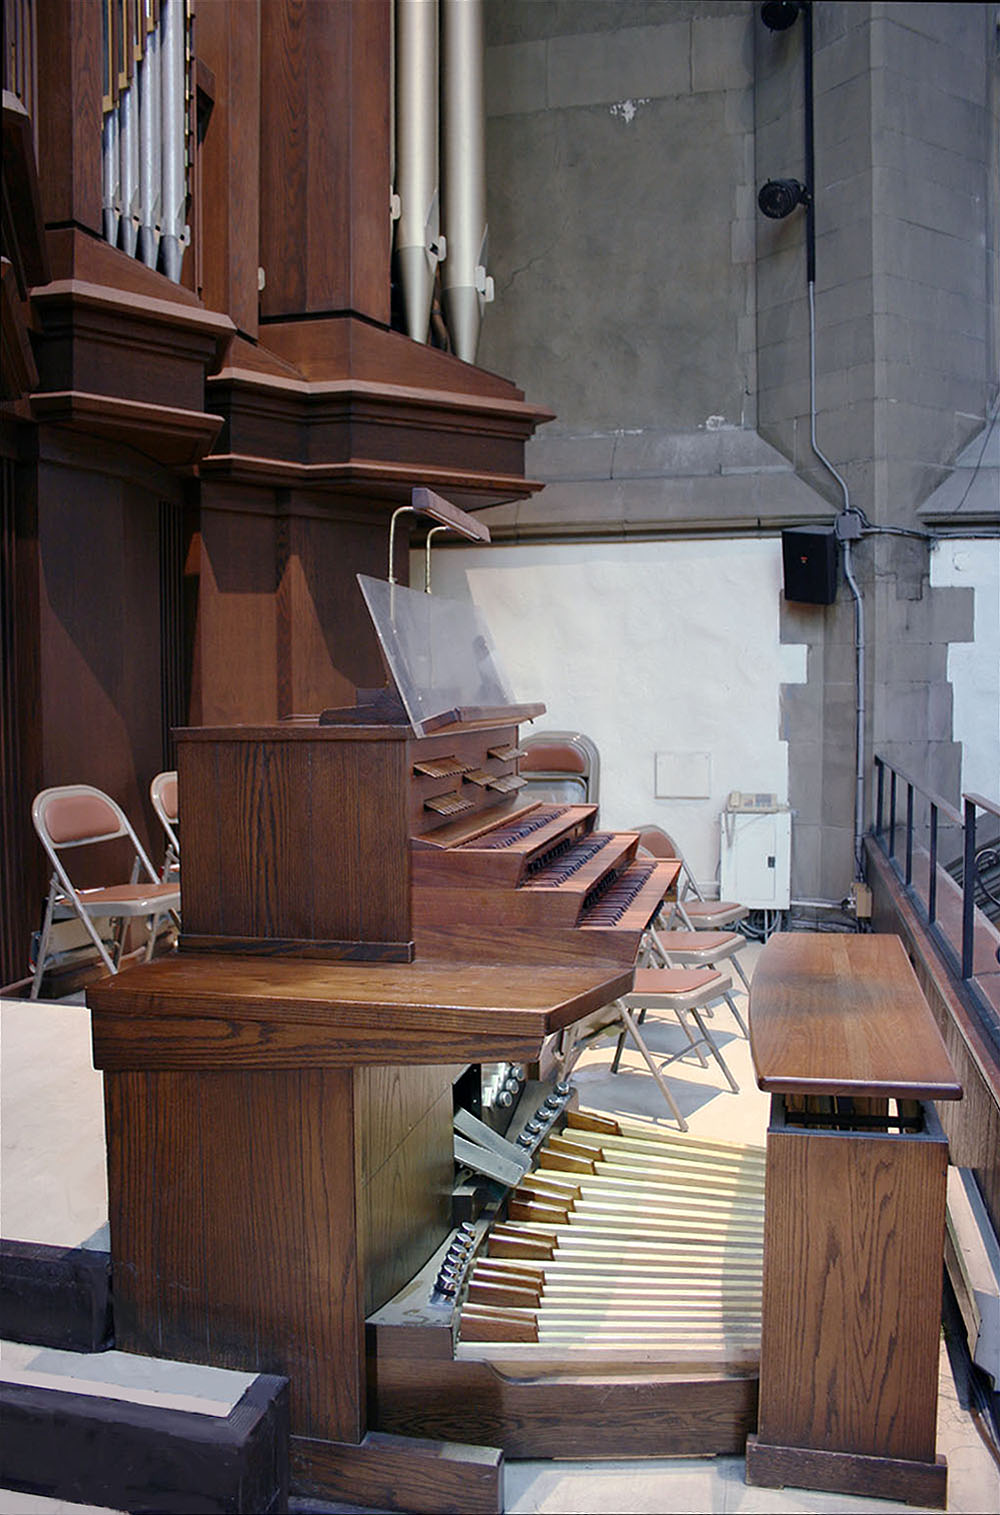 Holtkamp Organ, Op. 1967 (1982) - Park Avenue Christian Church - New York City (photo: Steven E. Lawson)